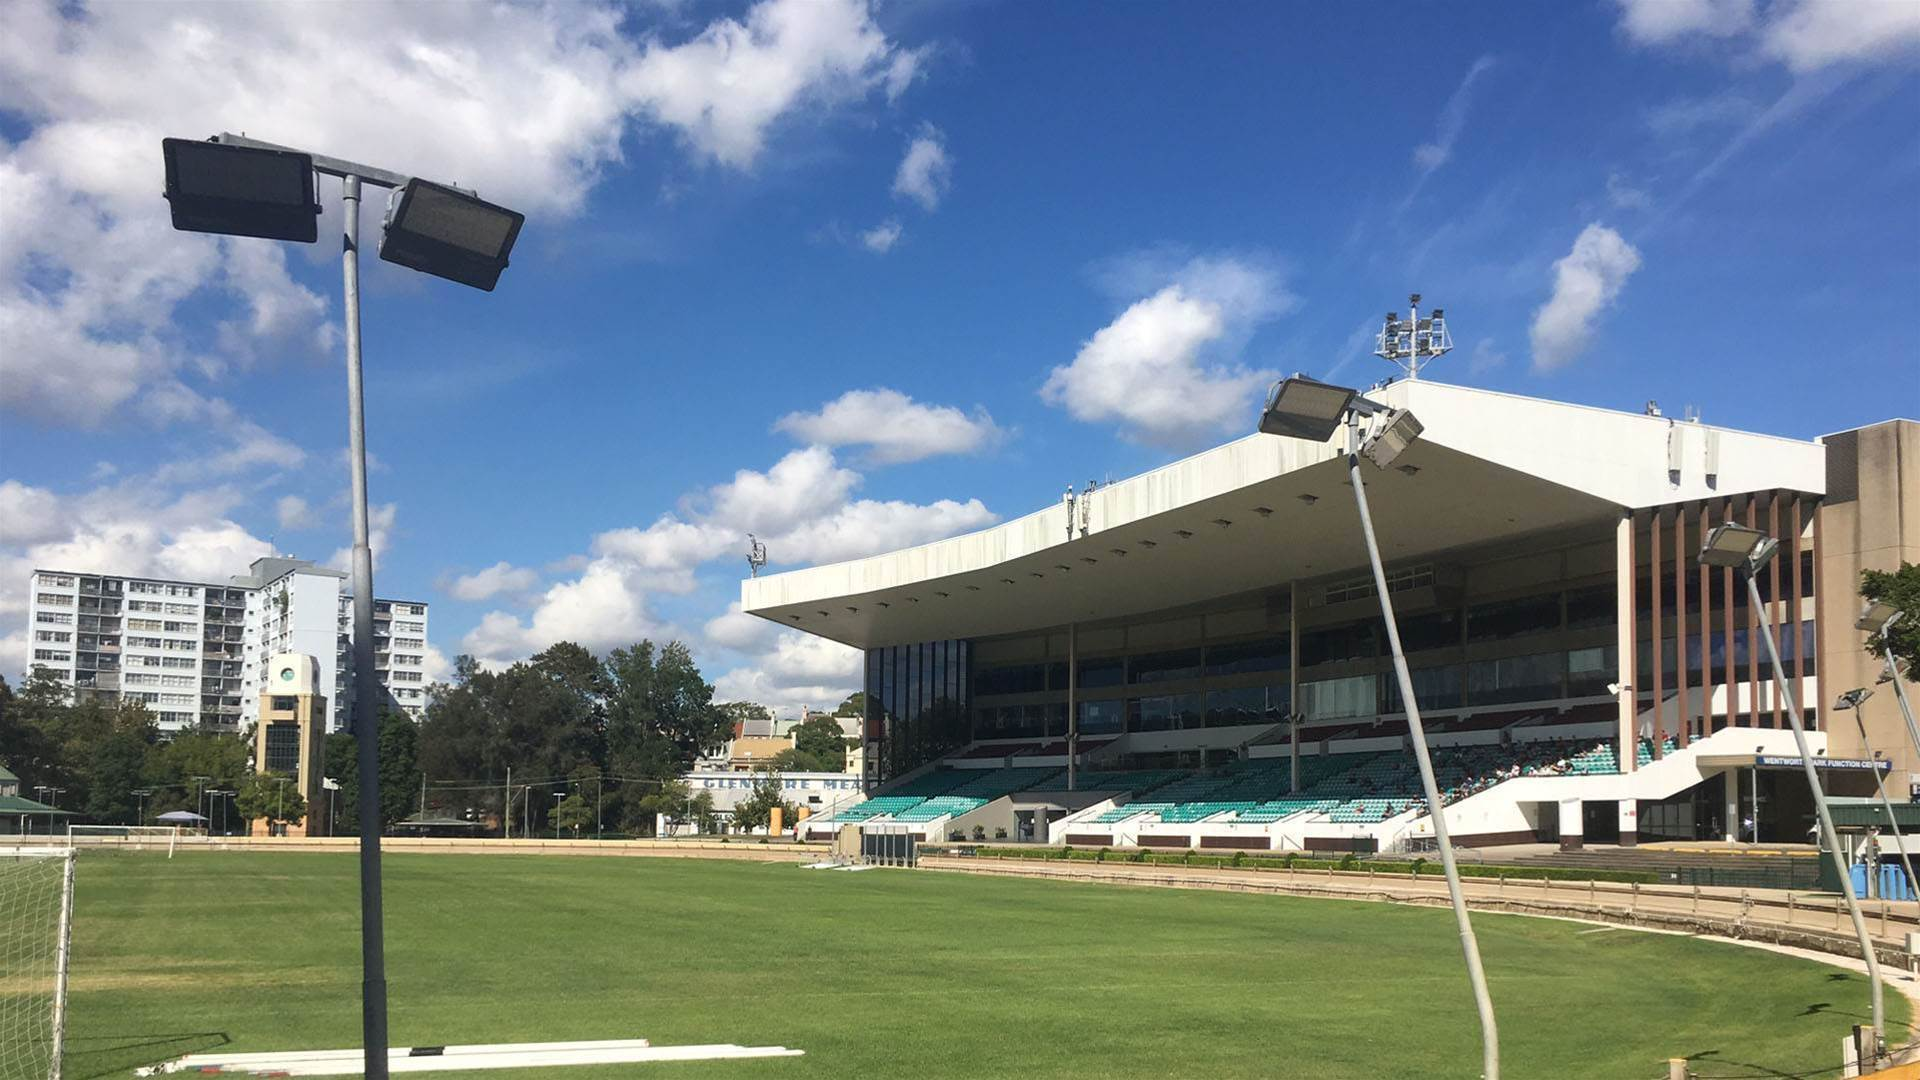 Wentworth Park's place in rugby league history